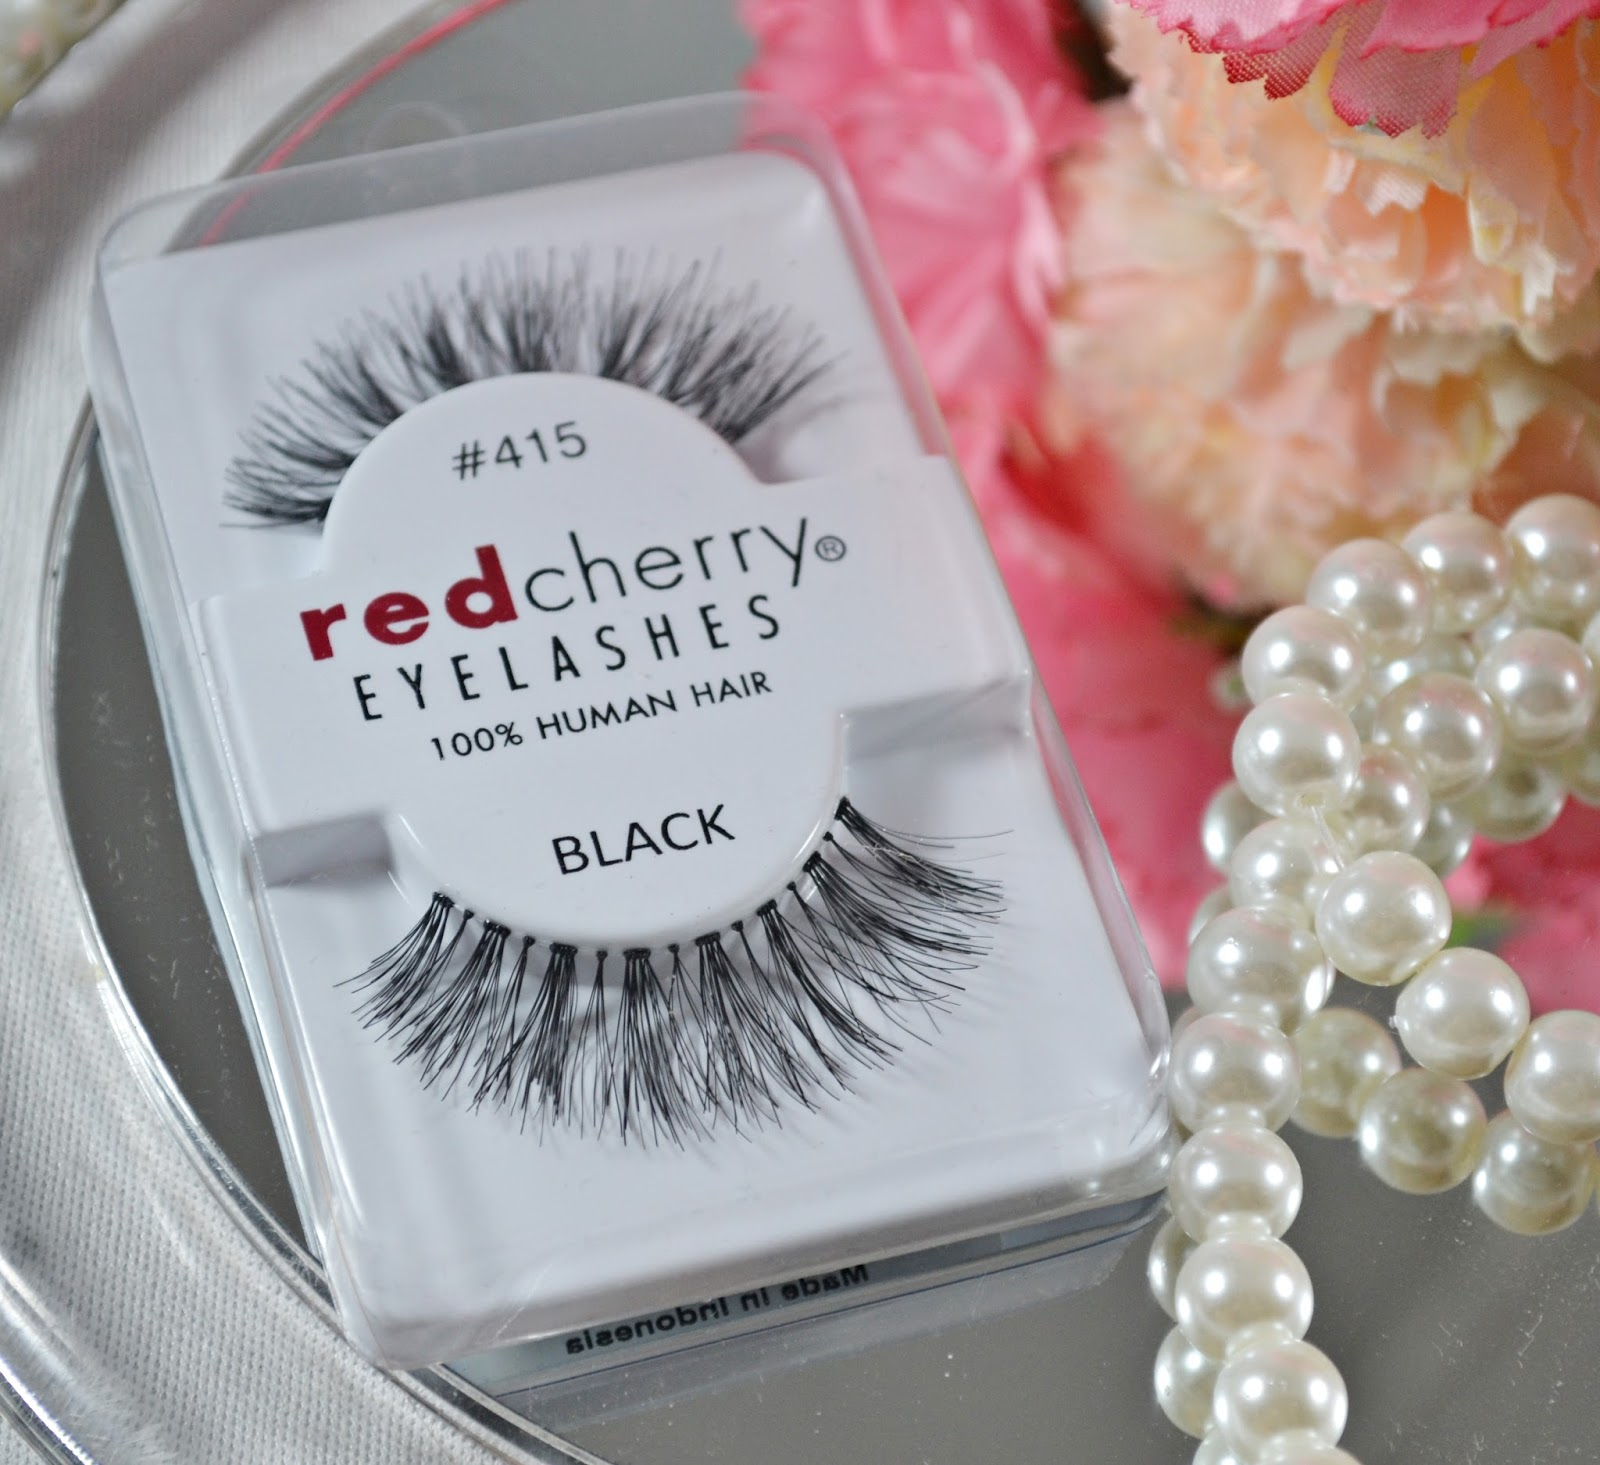 Red Cherry Eyelashes Ivy 415 Black All About Beauty 101